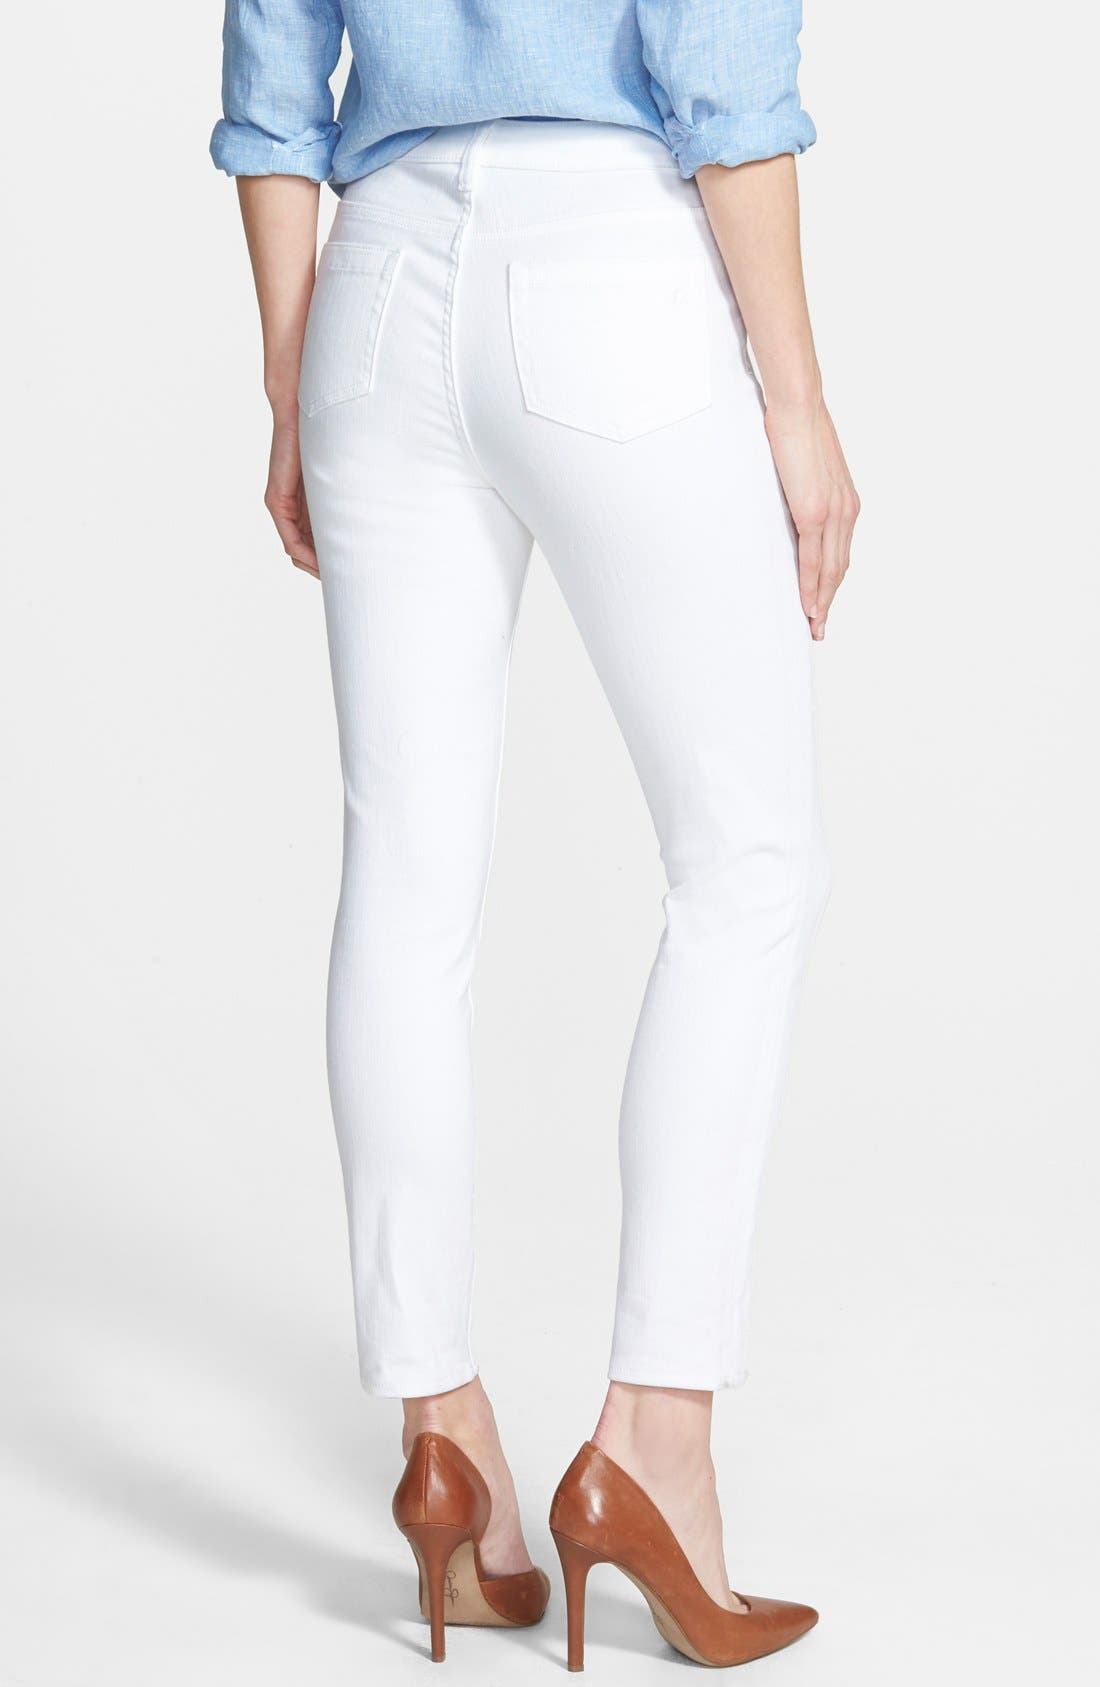 VINCE CAMUTO, Skinny Jeans, Alternate thumbnail 5, color, ULTRA WHITE